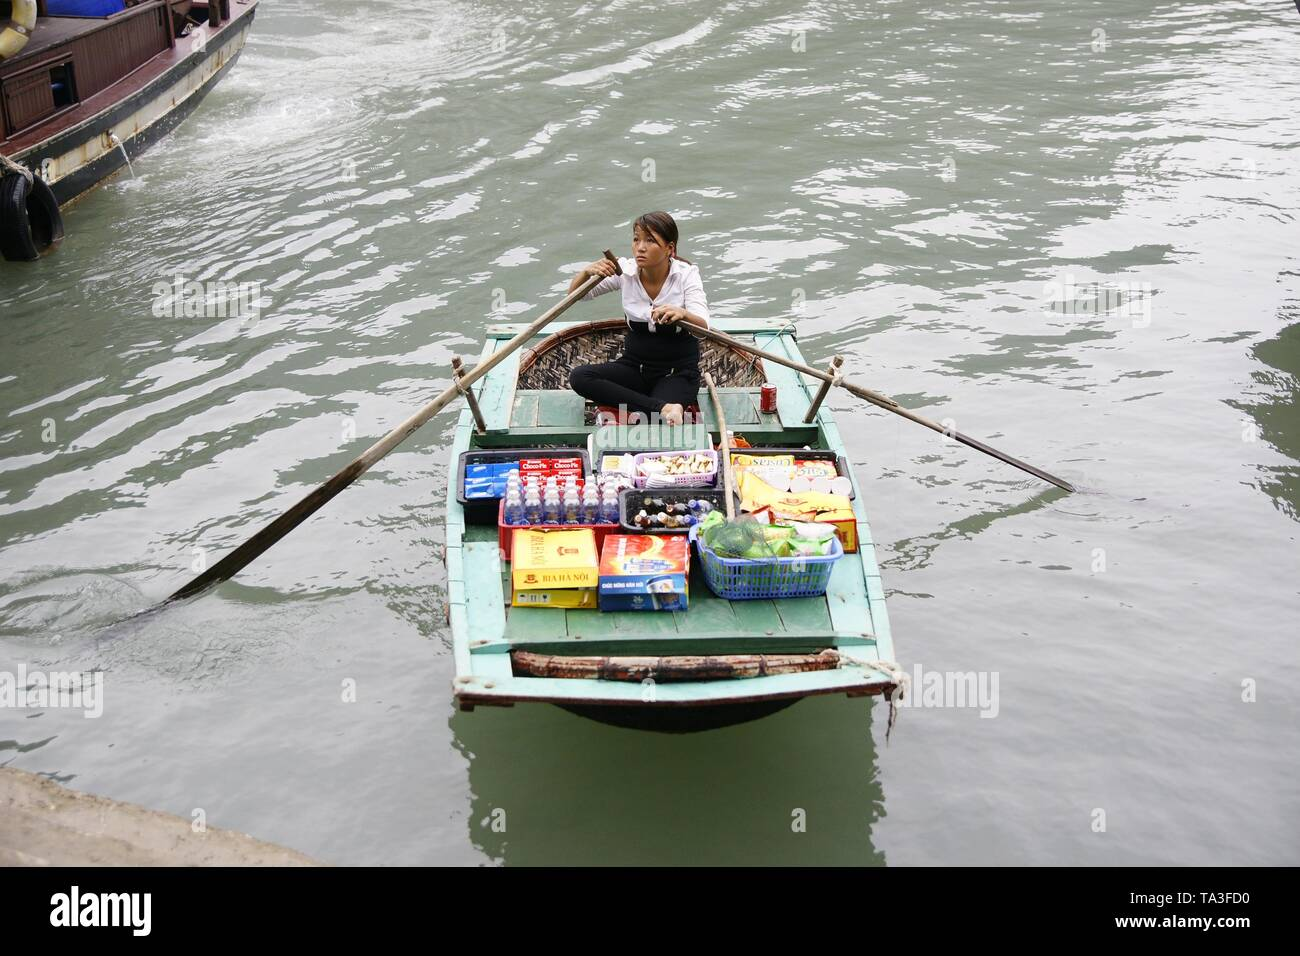 Ha long, vietnam - October 31, 2011: Food vendor in a boat offering food to tourists sailing on the sea bay of China in Vietnam. Stock Photo